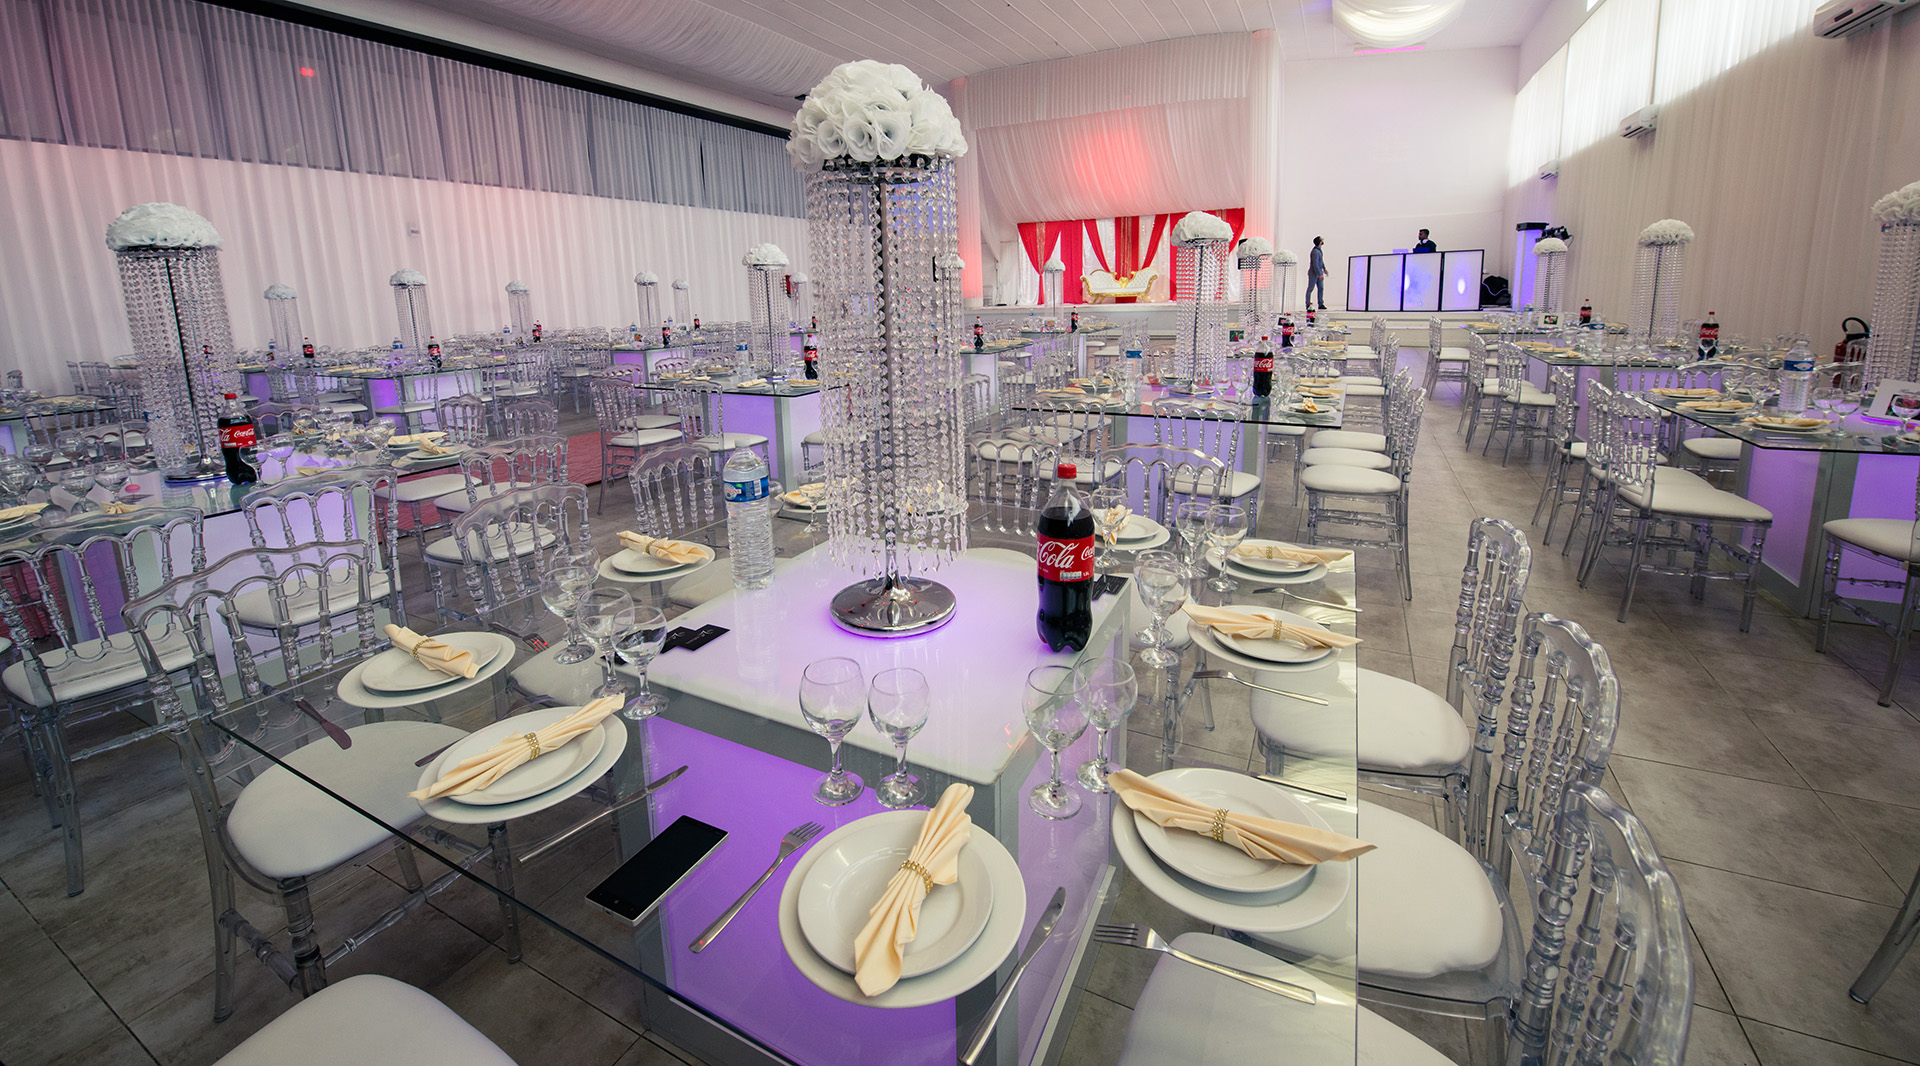 Decoration Entree Salle Mariage Decoration Entree Salle Mariage Finest Decoration Porte